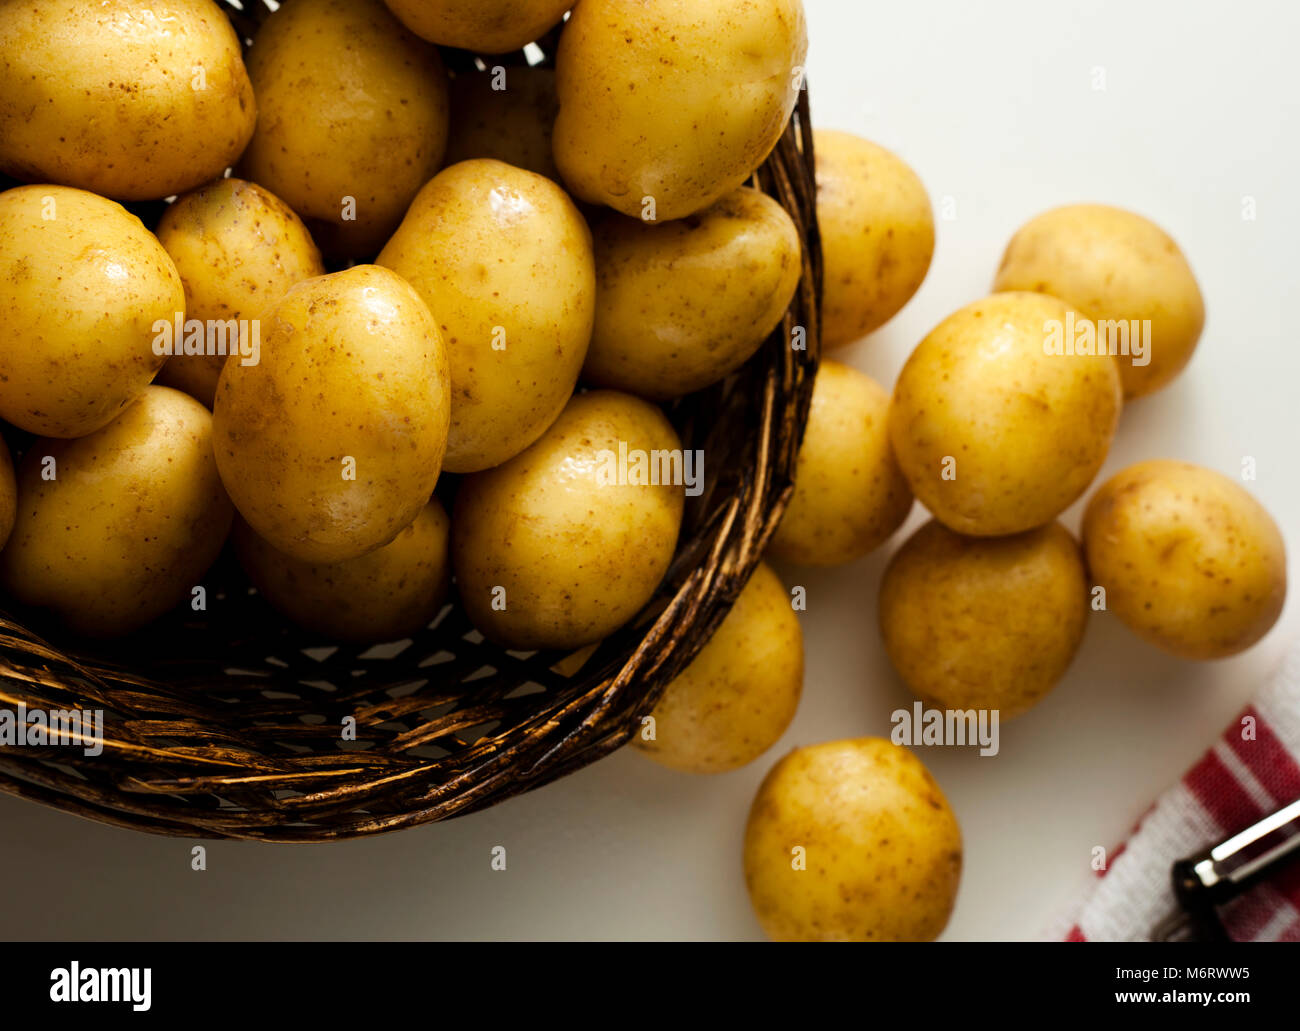 Within a wicker basket are several pounds of New Potatoes with peeler at side Stock Photo